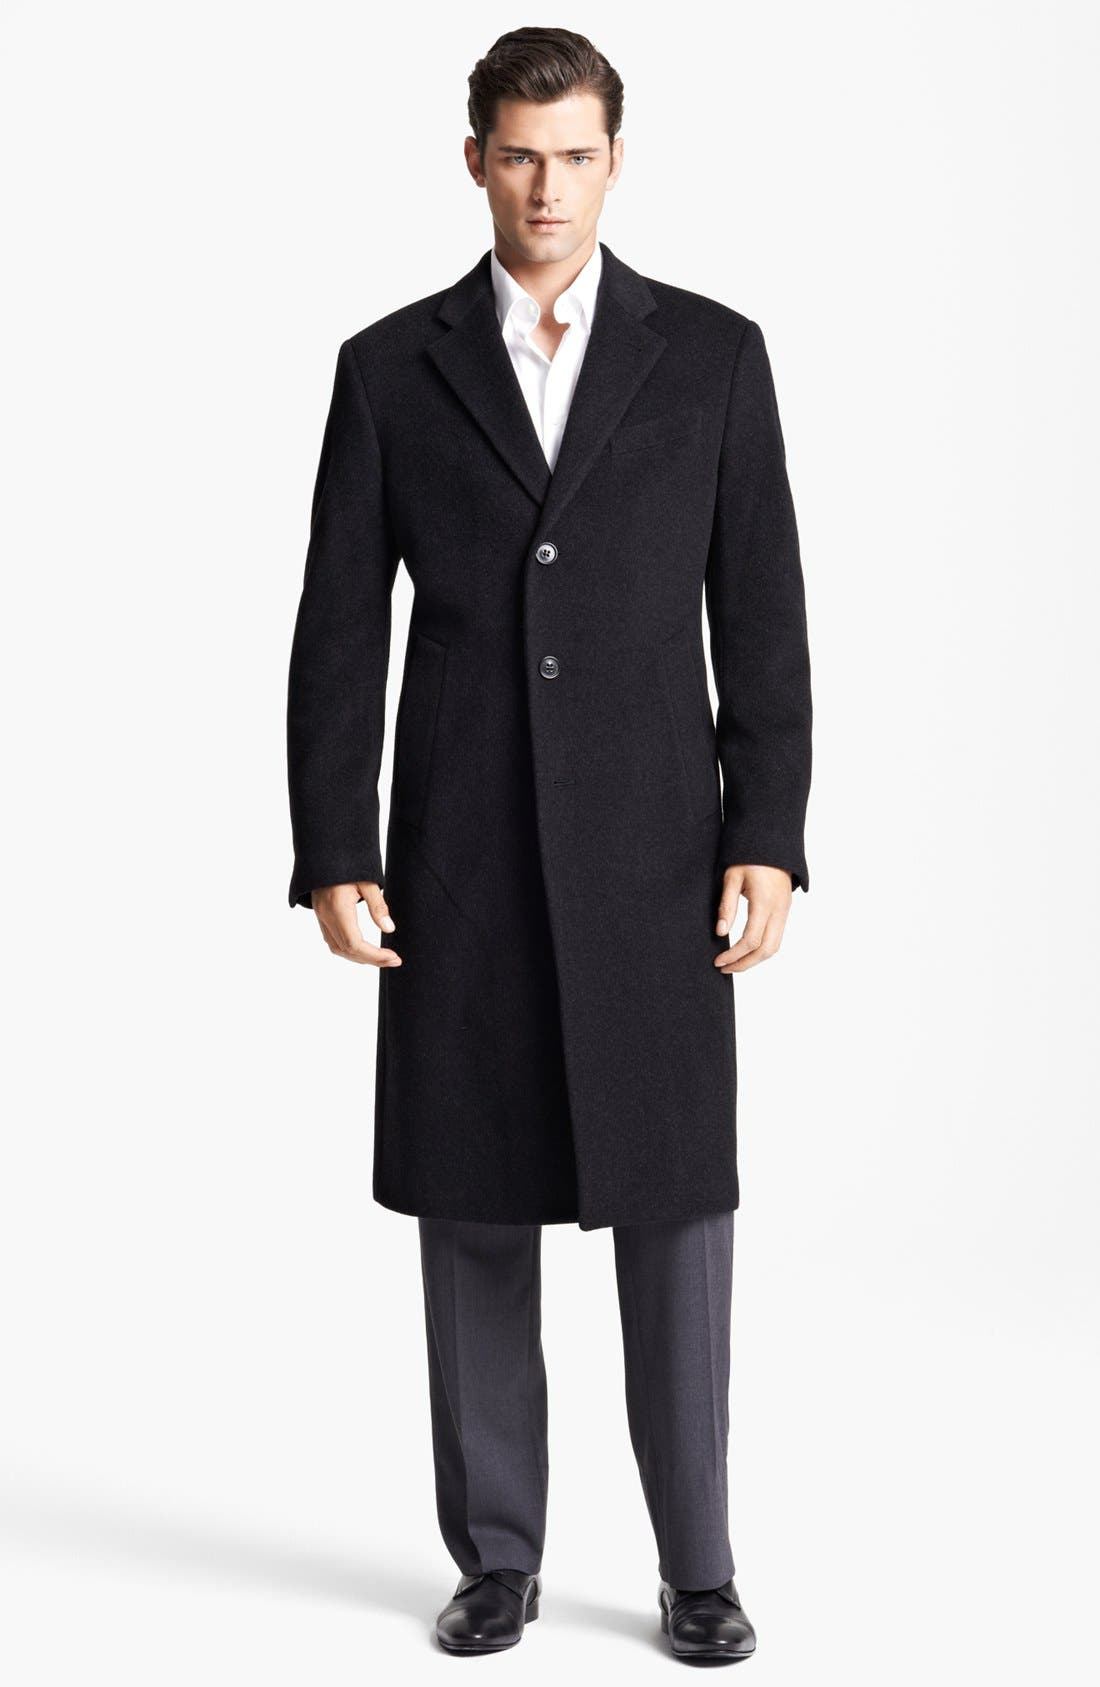 Main Image - Armani Collezioni 'Executive' Wool Top Coat (Online Only)